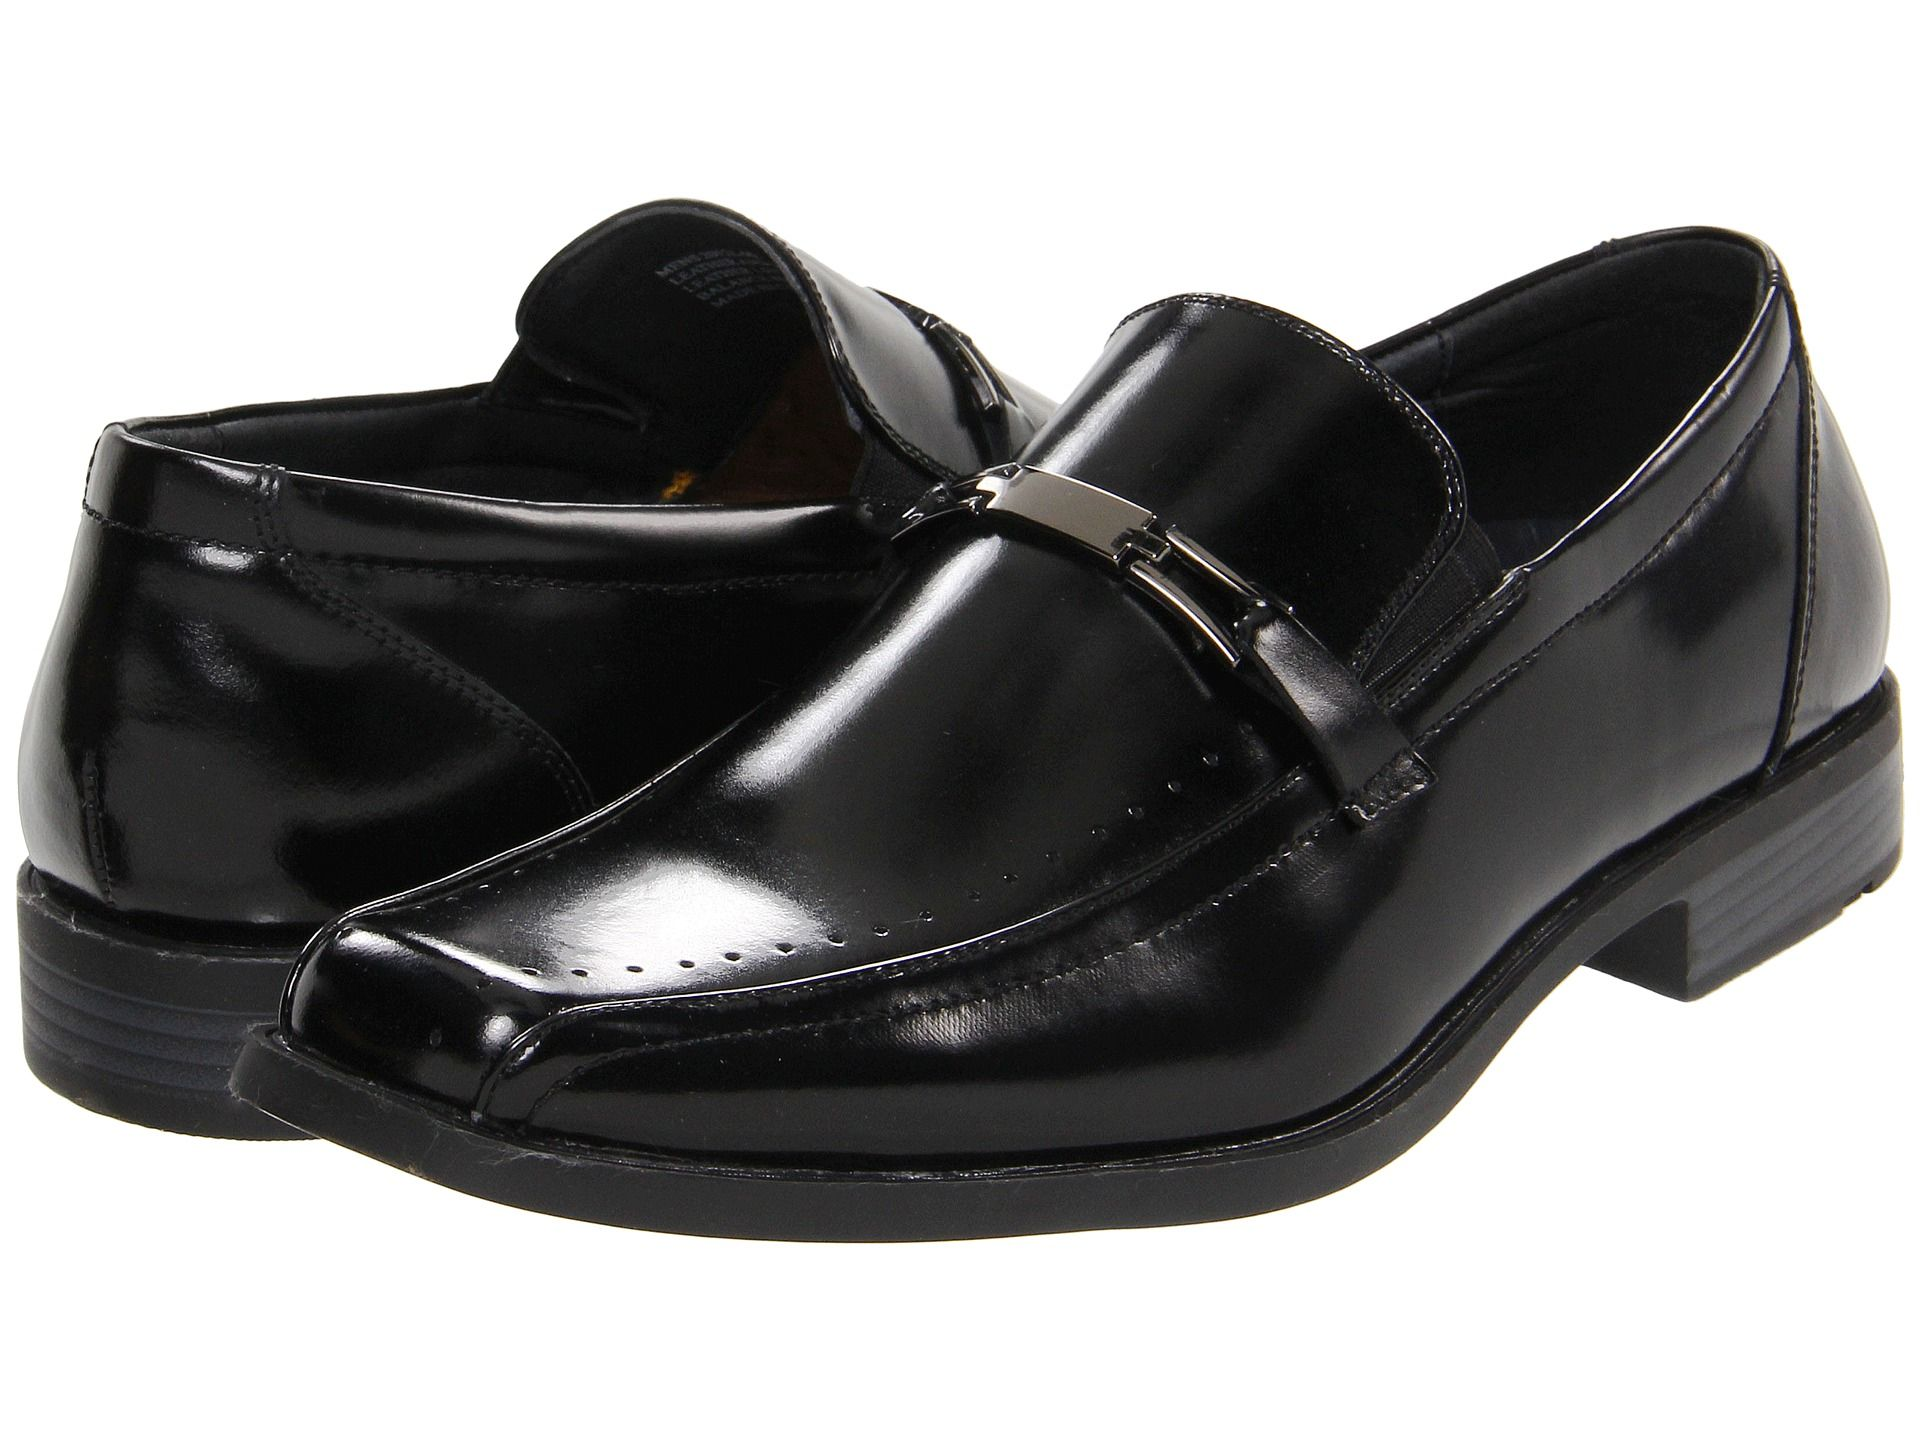 Men's Dress Shoes Up to www.sodoughsavvy.com